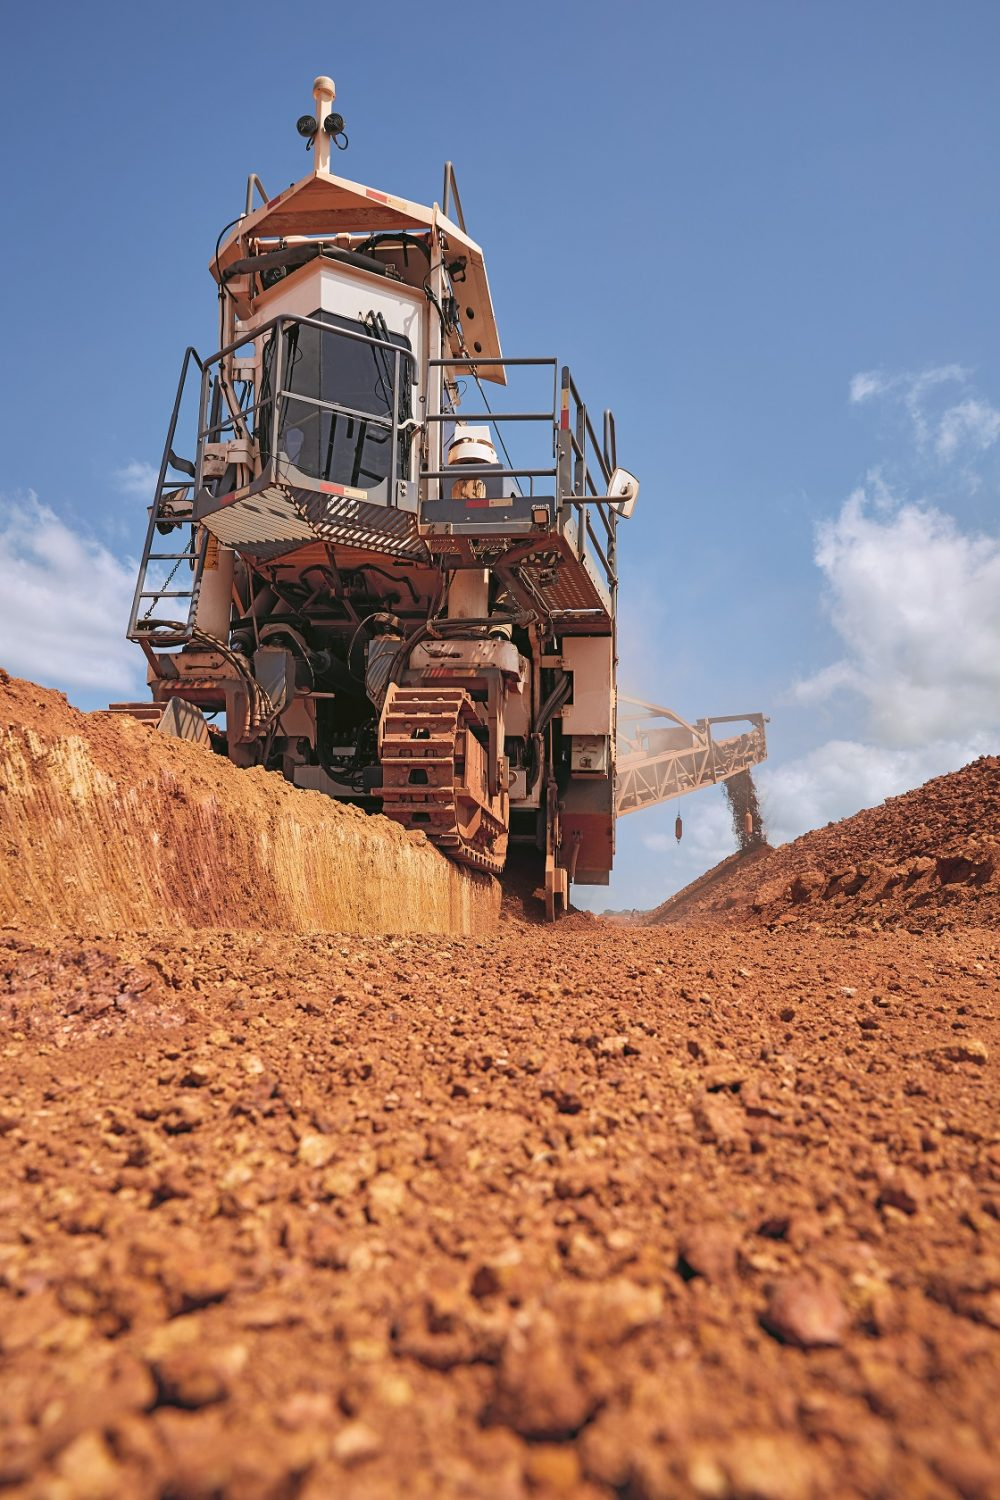 During the mining process, Wirtgen machines produce level surfaces that serve as stable roadways, facilitating rapid transportation of the mined material. During this process, the LEVEL PRO leveling system collects and transmits data on the leveling process and controls the cutting depth from the operator's stand.